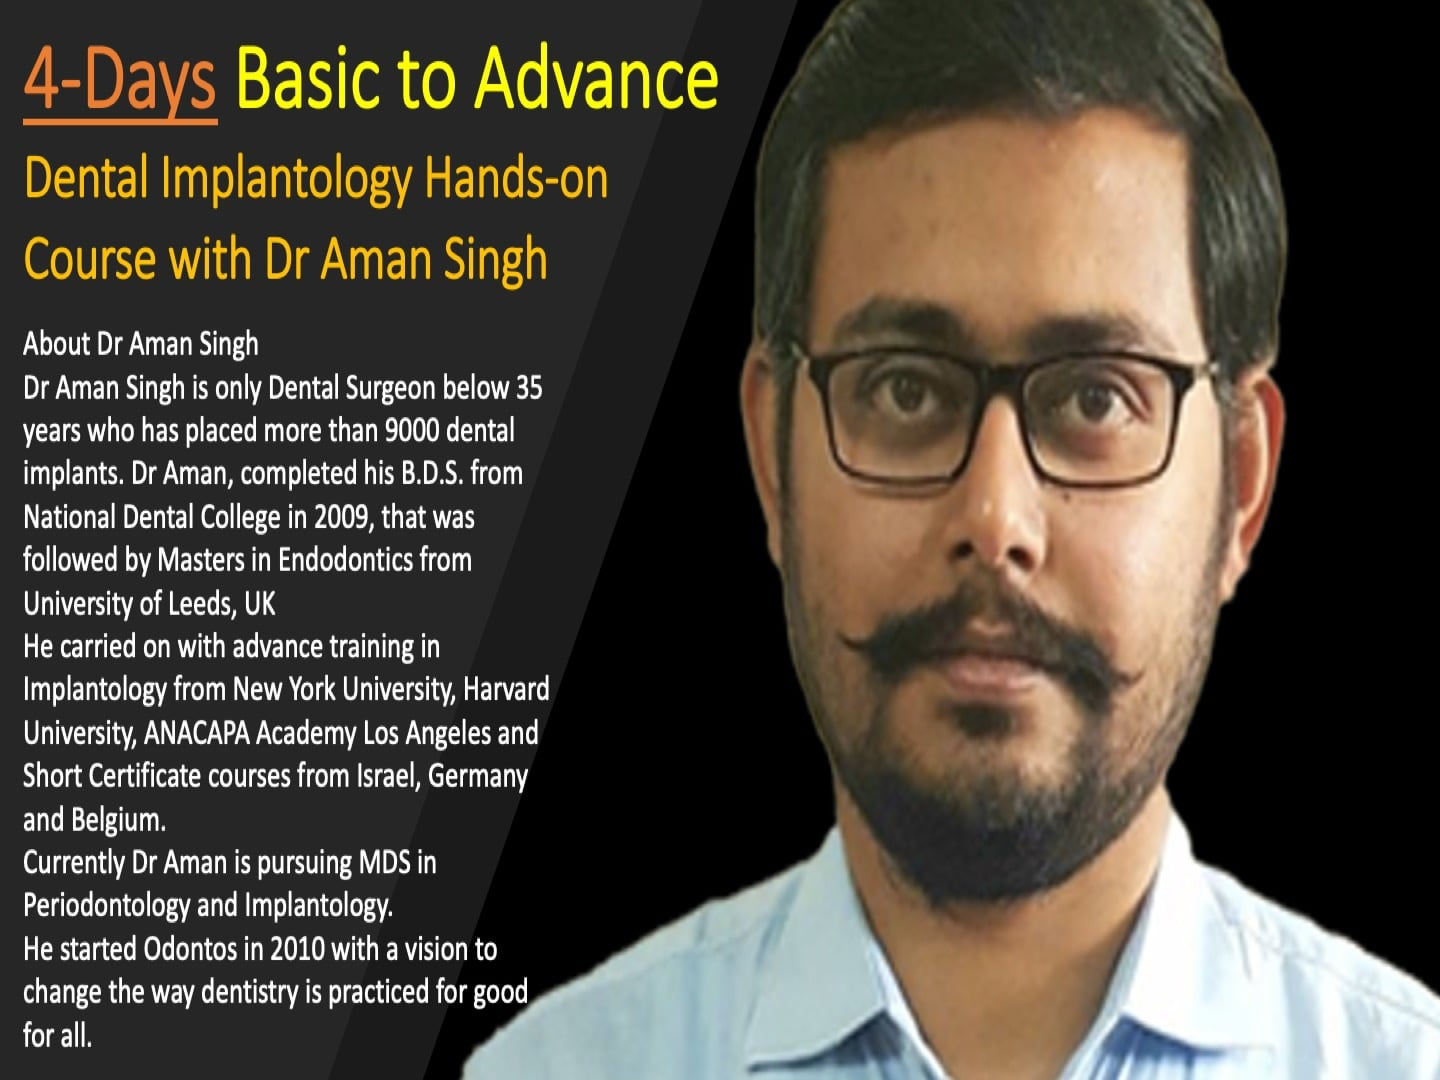 4 Days Basic to Advance Dental Implantology Course with Dr. Aman Singh